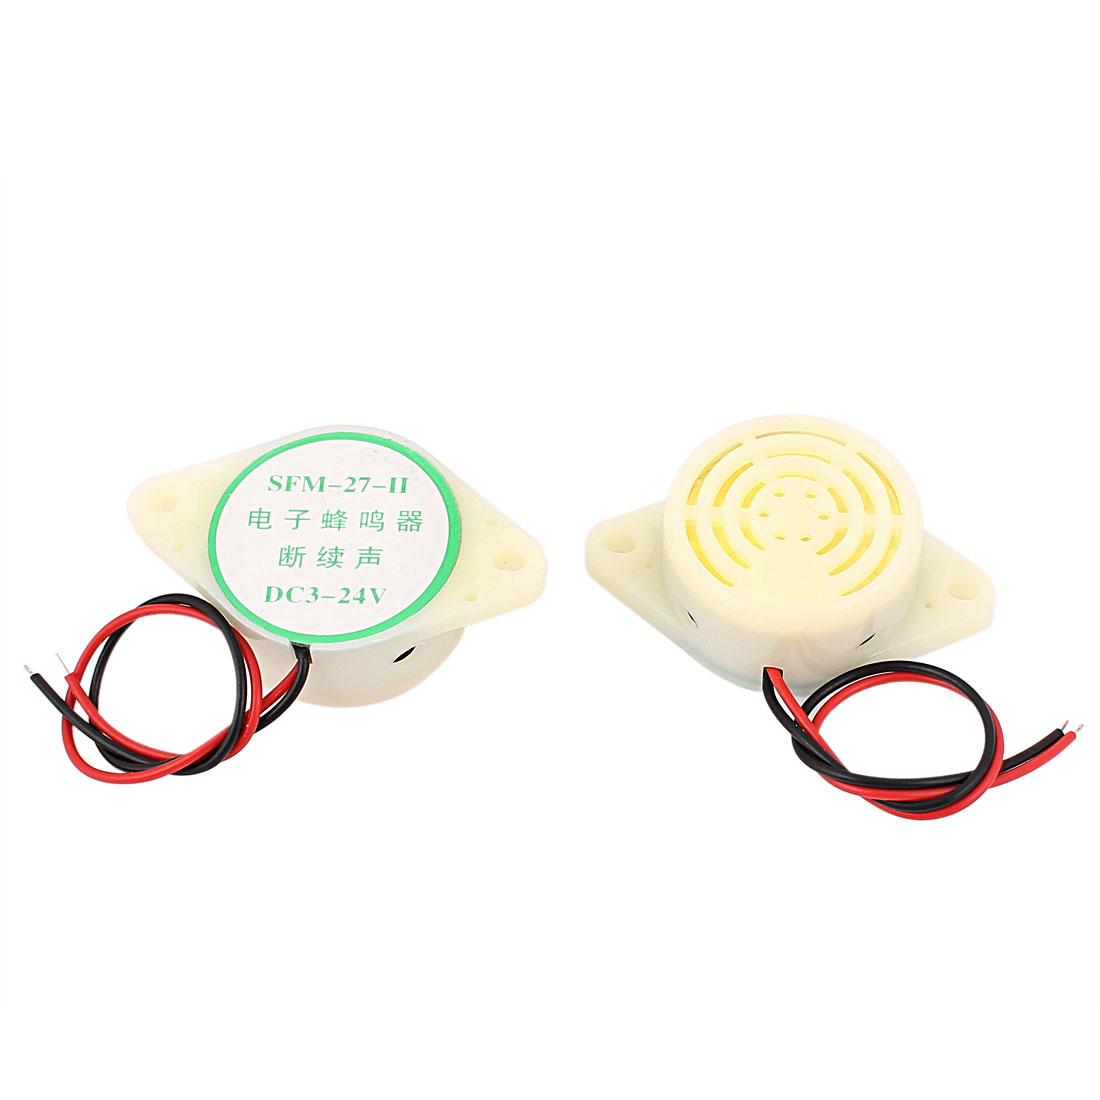 2pcs DC 3-24V Industrial Continuous Sound Electronic Buzzer White